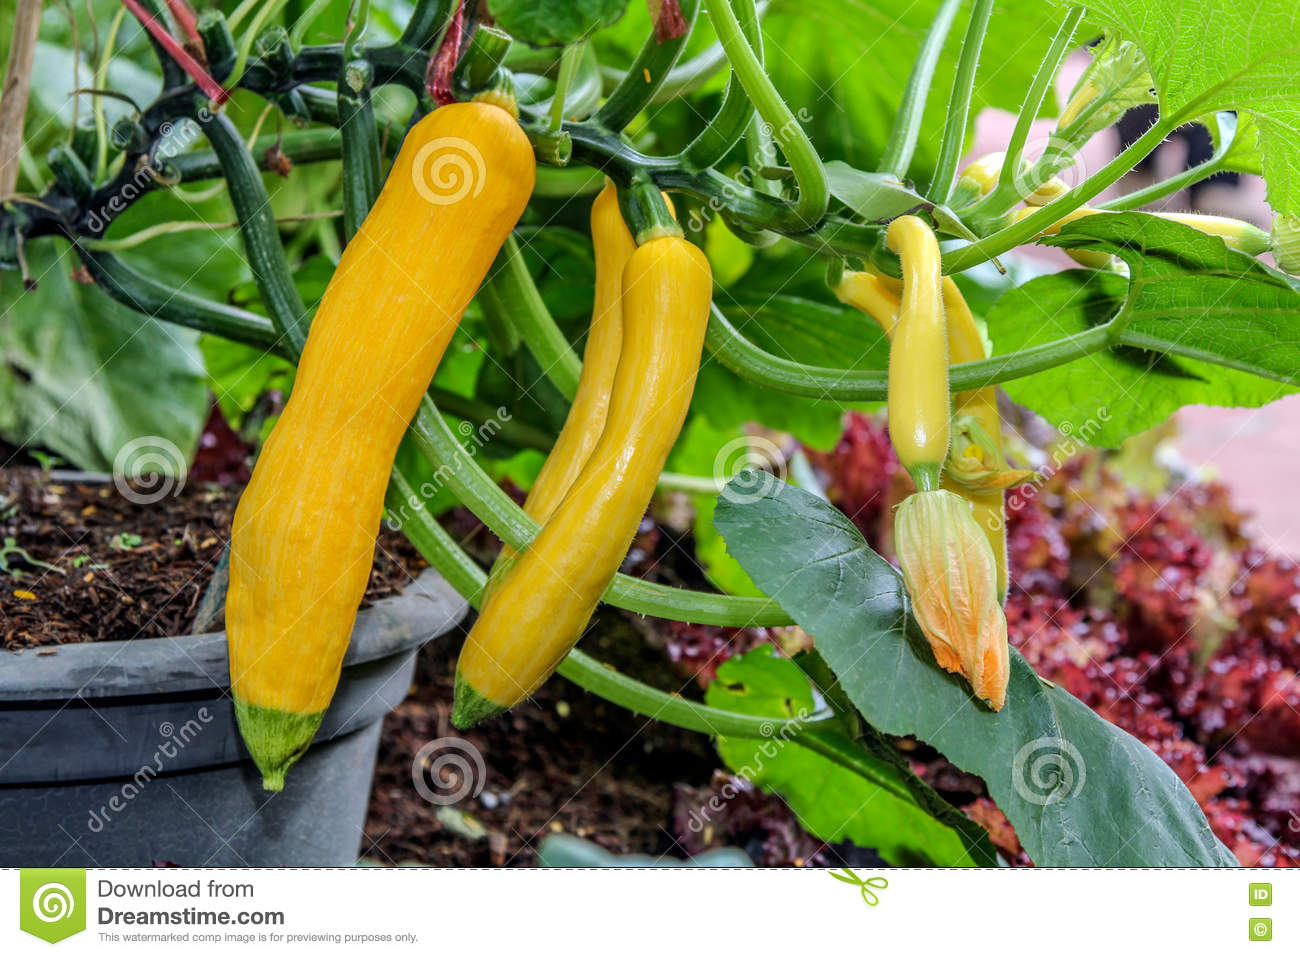 zucchini flower on the fruit at a plant in the vegetable garden stock photography. Black Bedroom Furniture Sets. Home Design Ideas